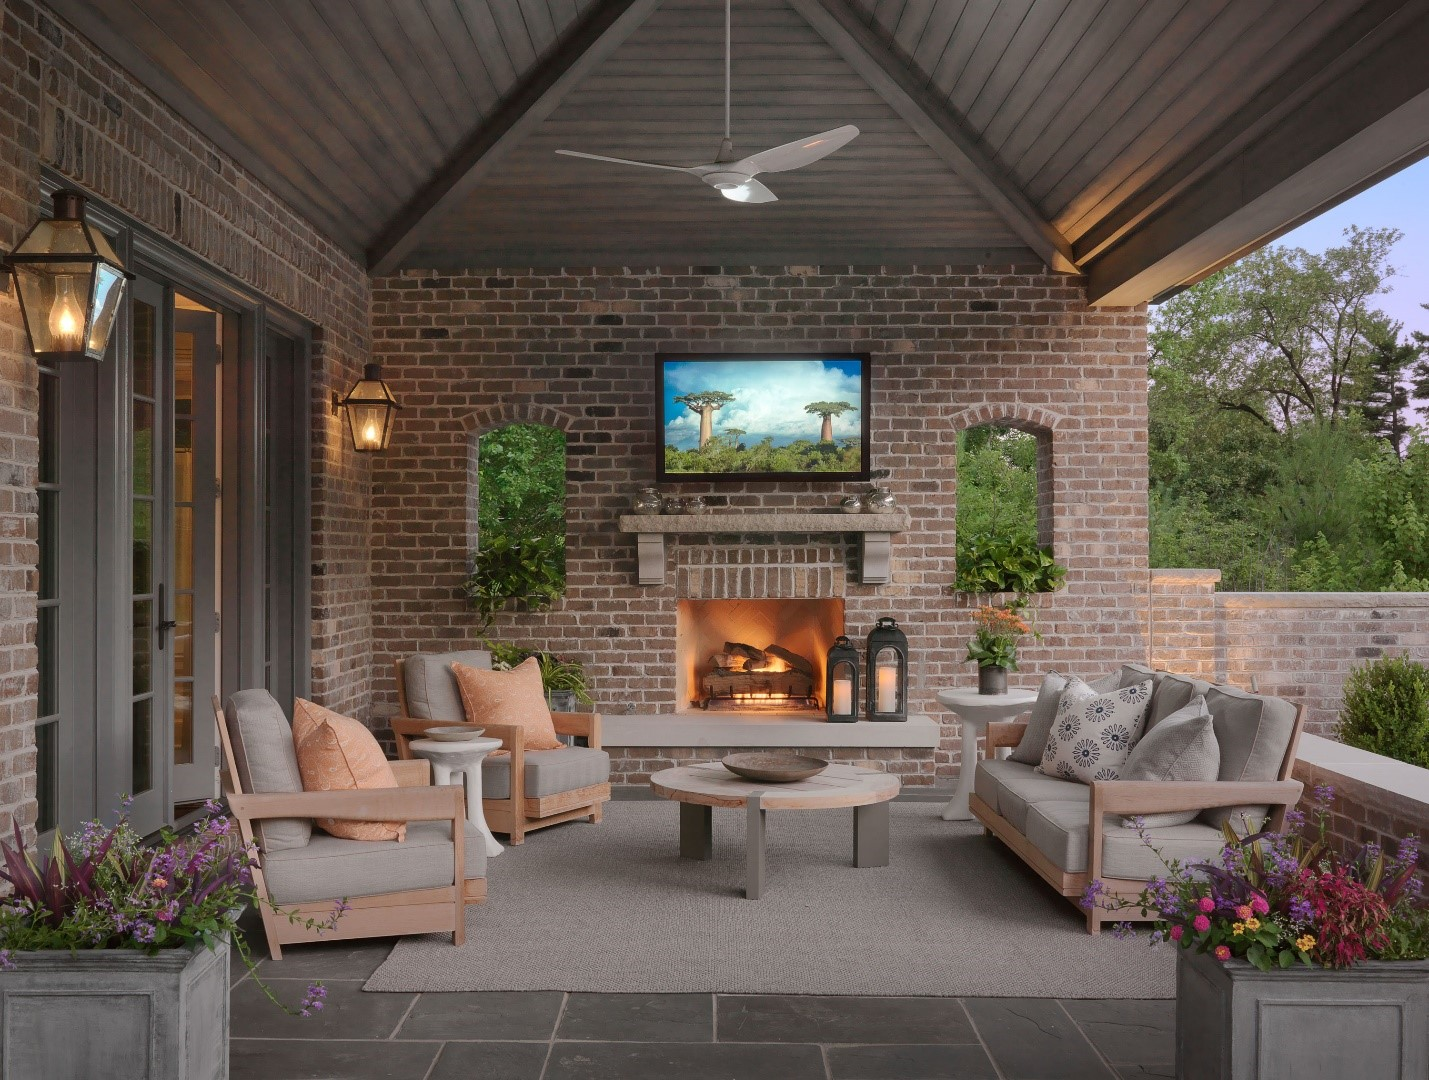 How to Pick the Right TV for Your Atlanta Outdoor Space